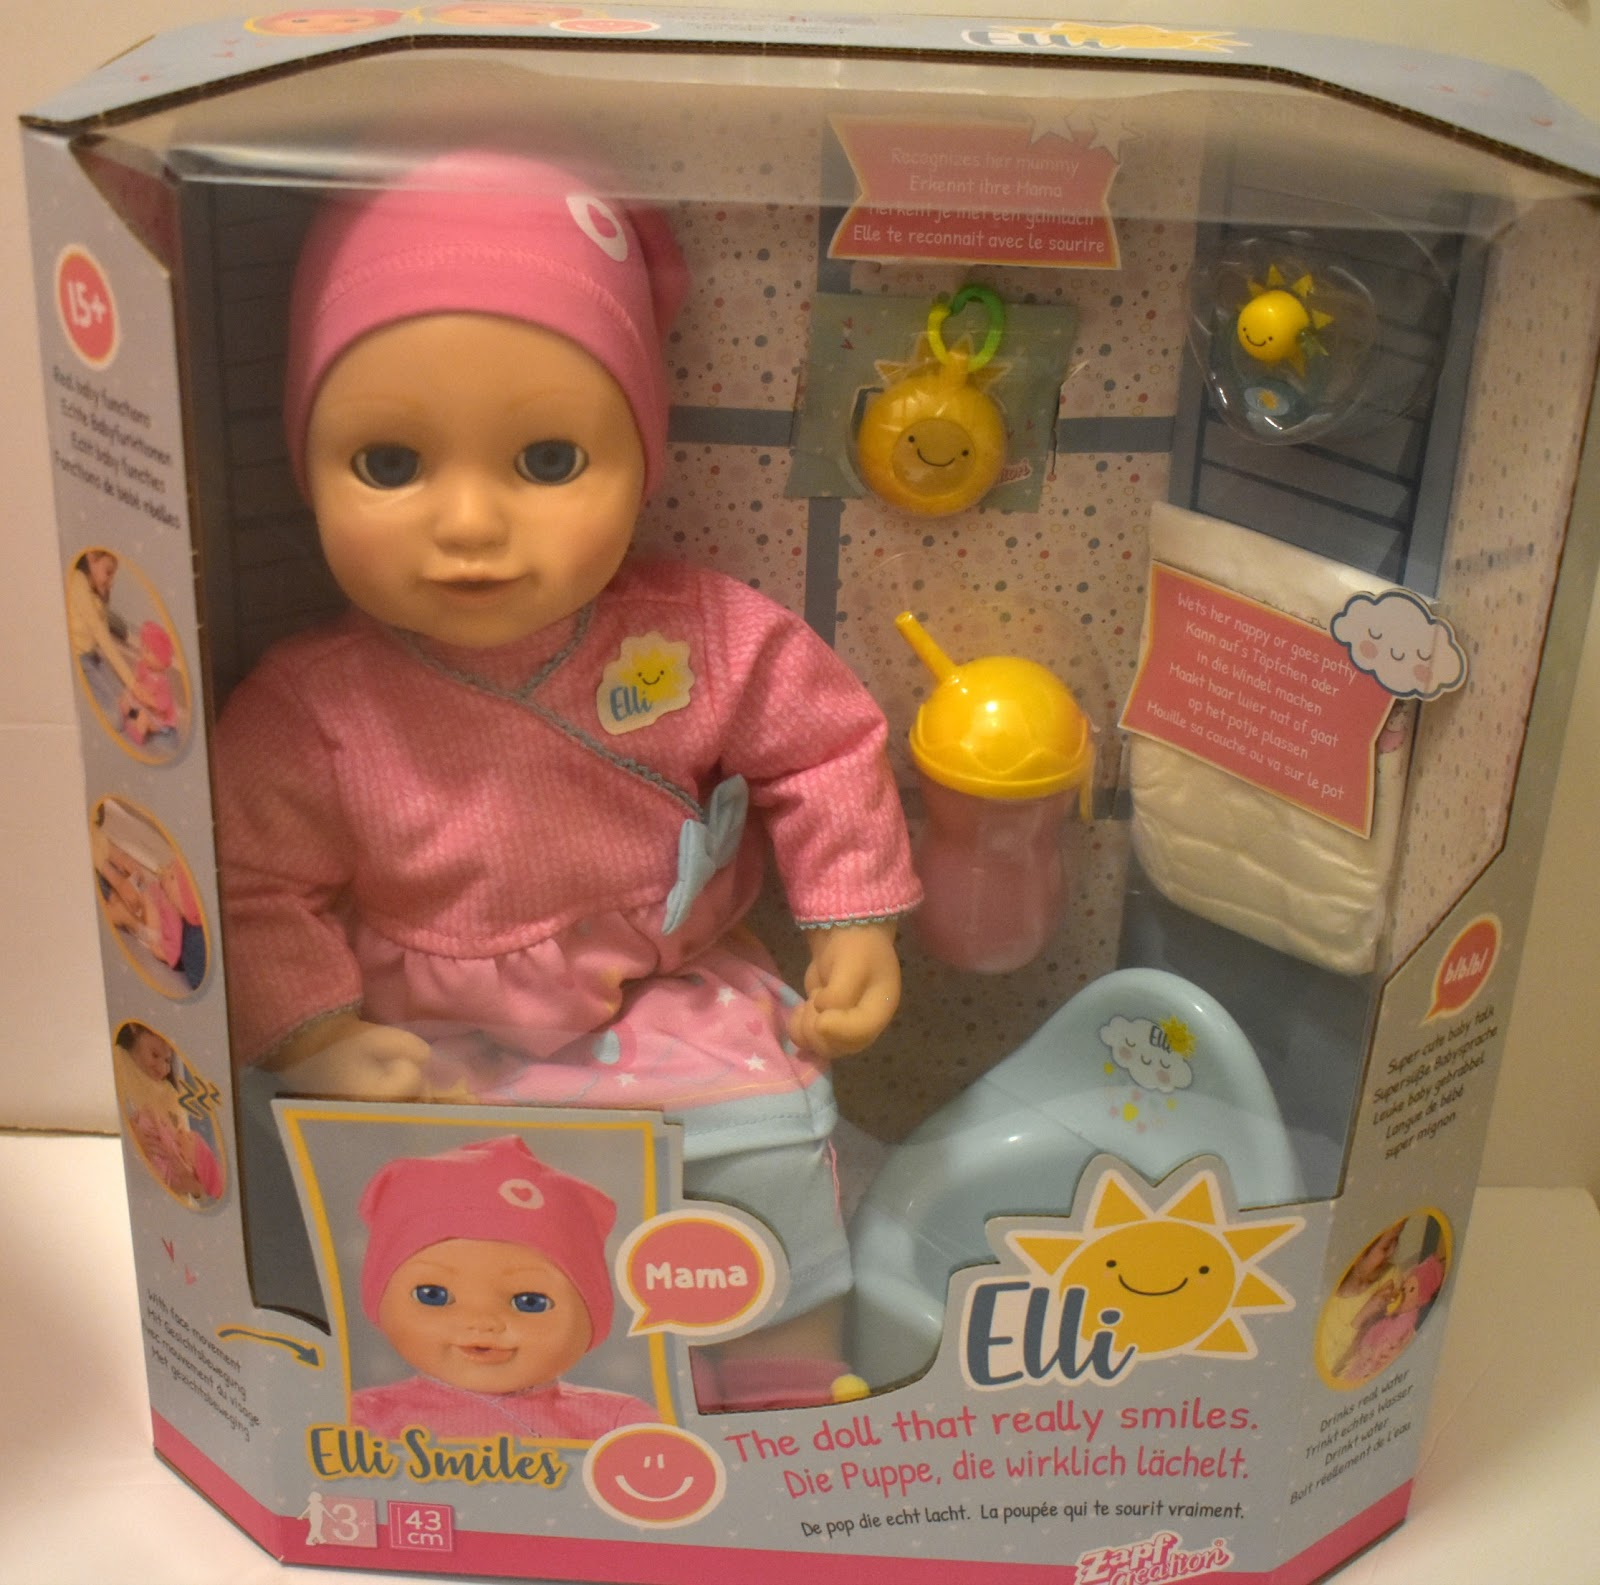 Elli Smiles Doll Review